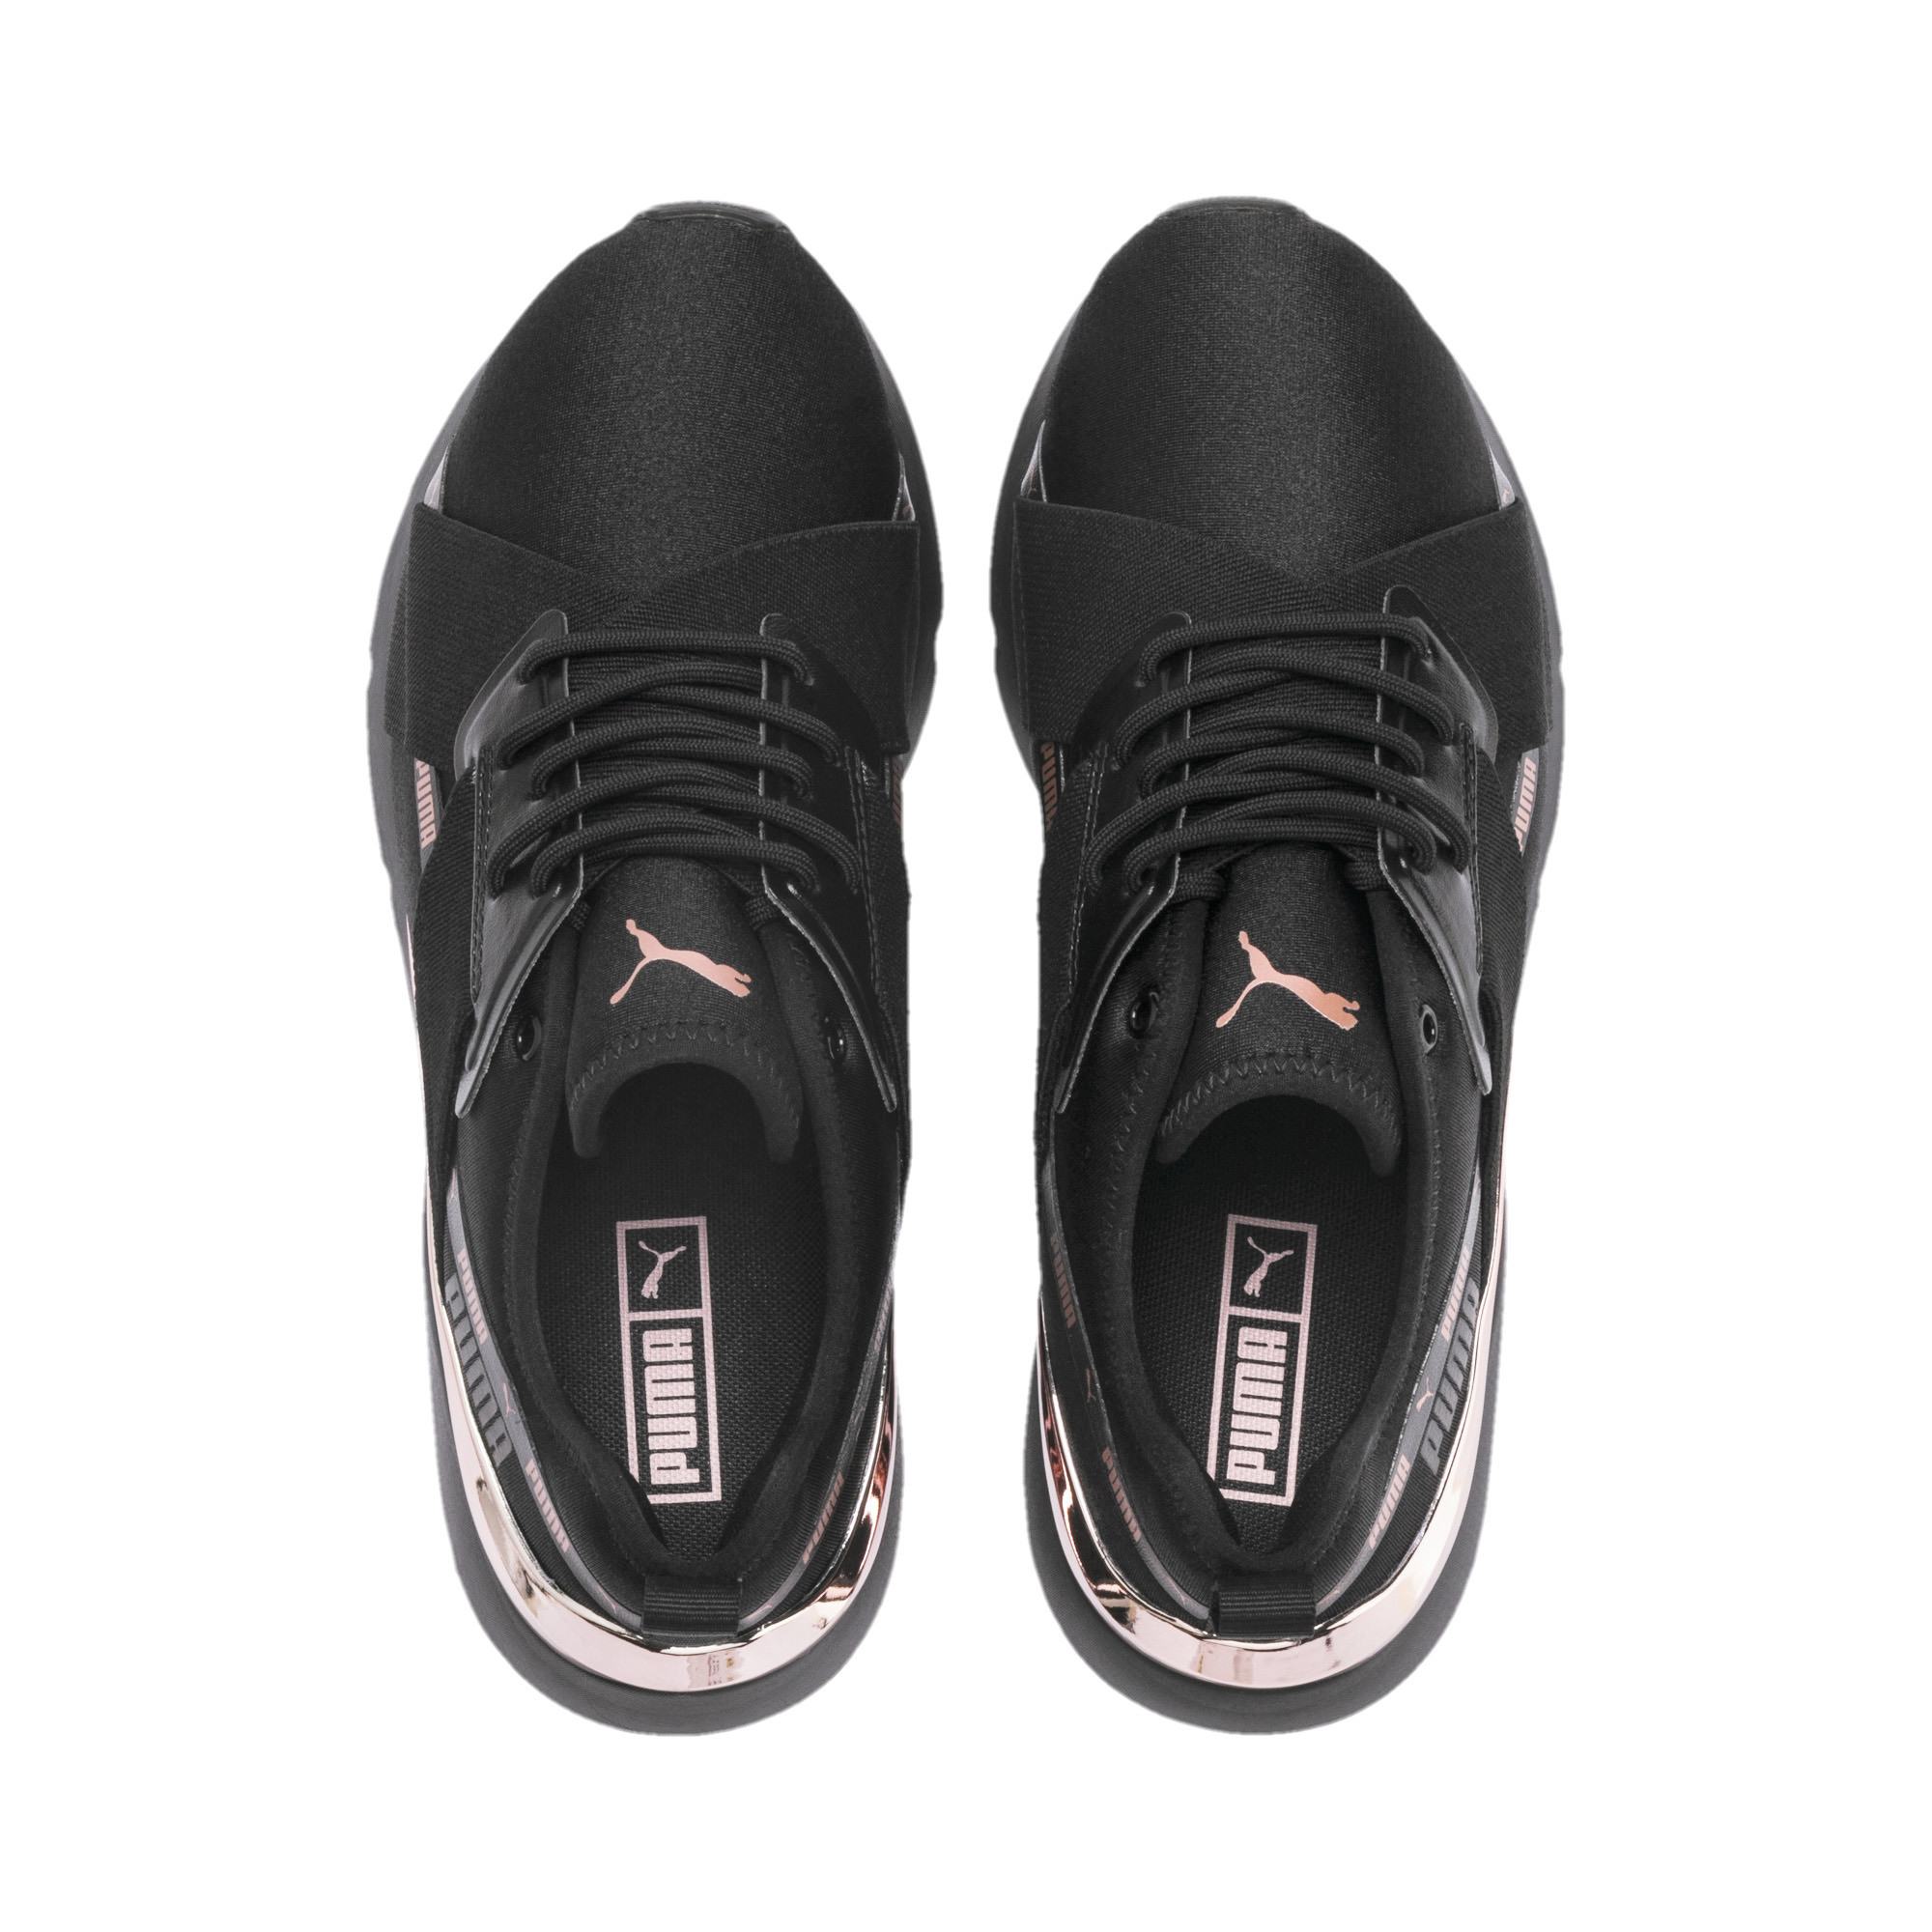 PUMA-Muse-X-2-Metallic-Women-039-s-Sneakers-Women-Shoe-Evolution thumbnail 22